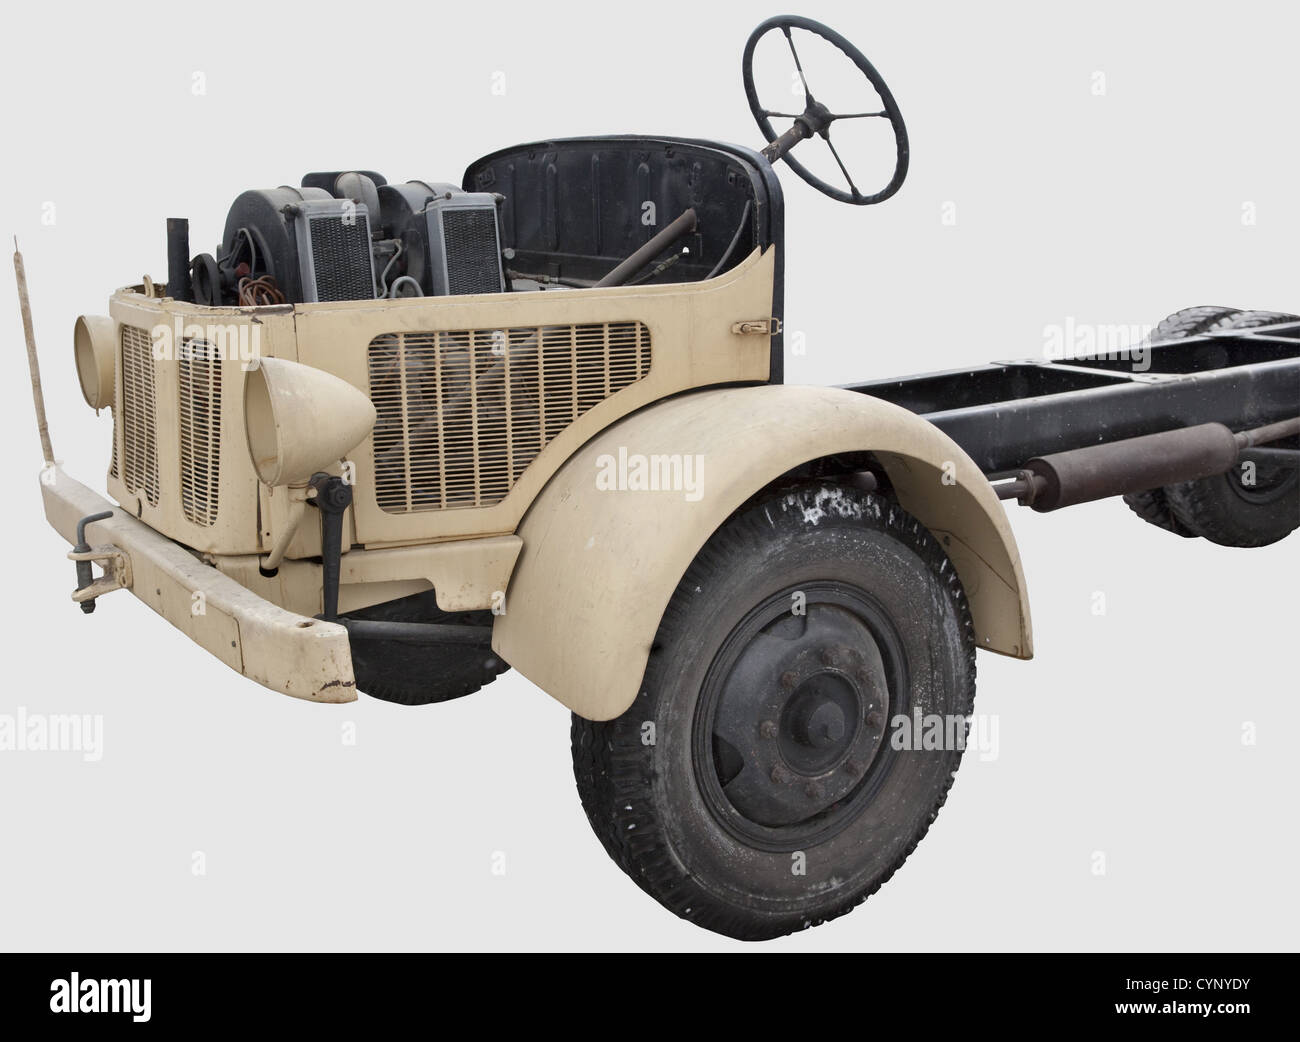 A Steyr type 370 4 x 2 chassis, This chassis and the